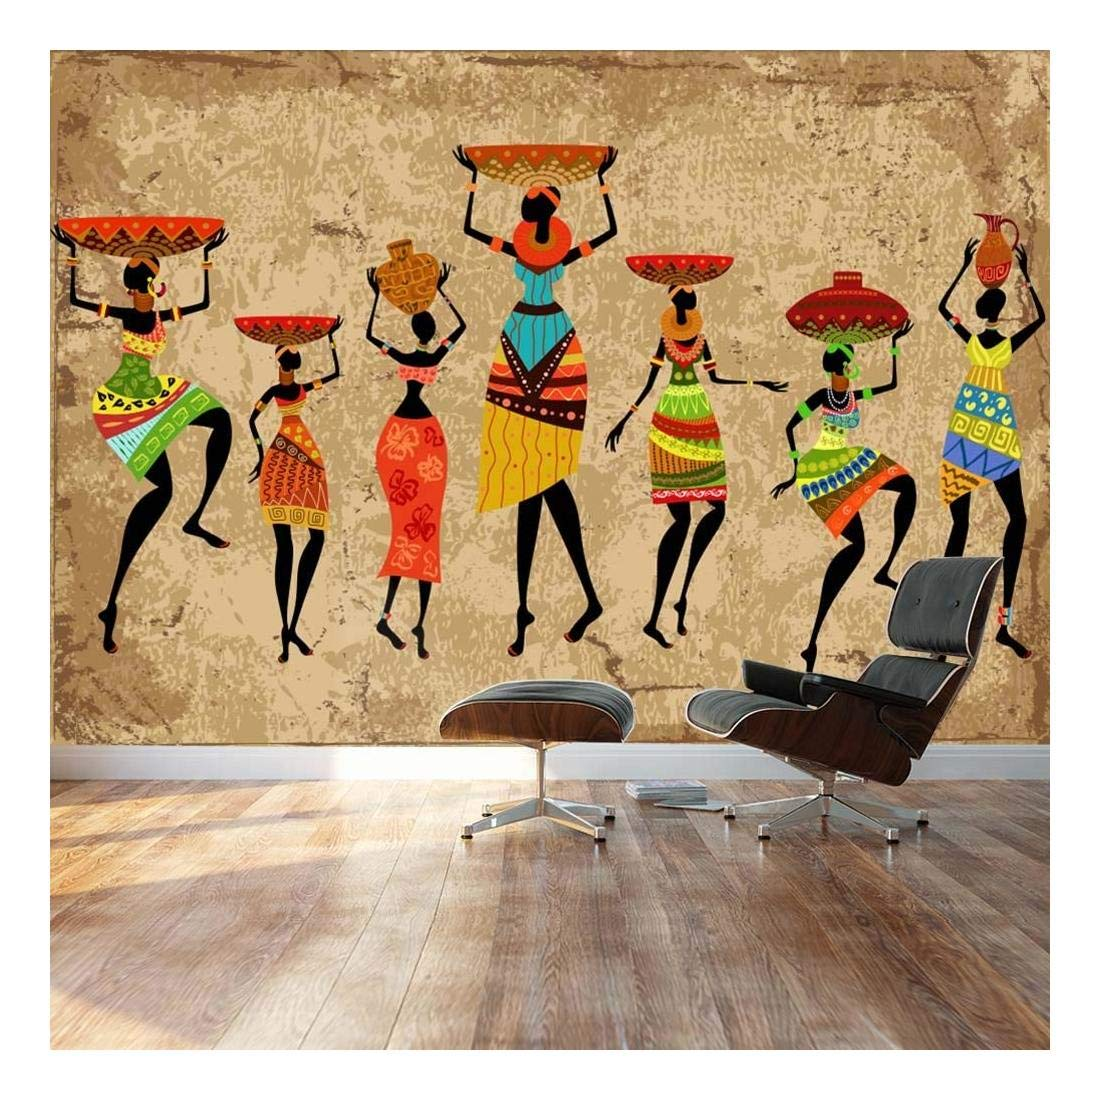 Wall26 Large Wall Mural Abstract Art African Woman On Grunge Background Self Adhesive Vinyl Wallpaper Removable Modern Decorating Wall Art